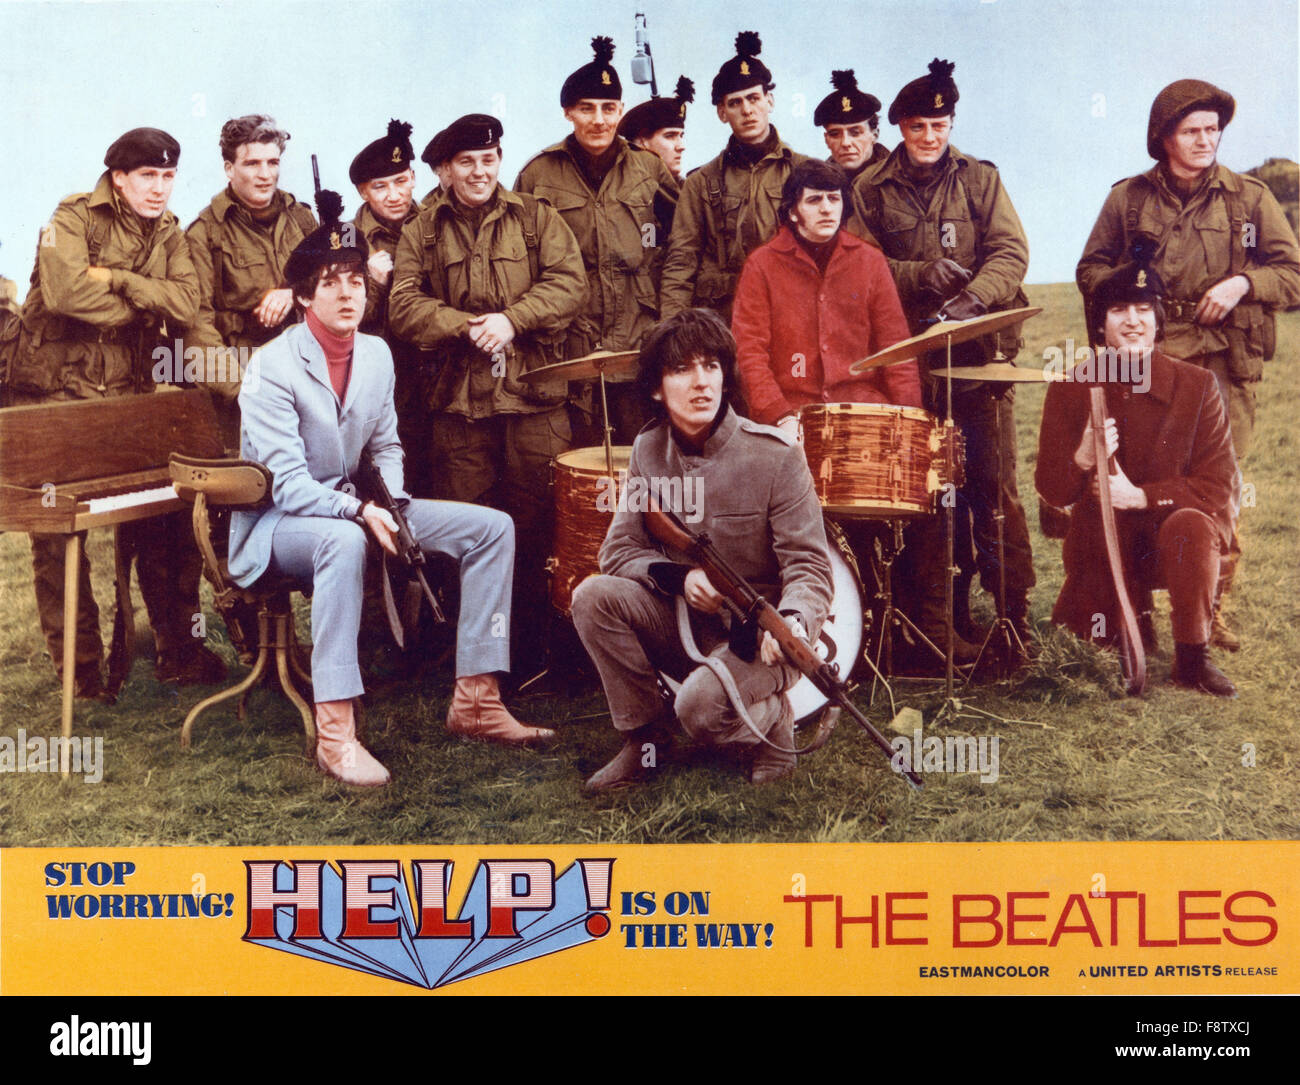 richard lester filmsrichard lester filmography, richard lester imdb, richard lester, richard lester transport, richard lester cello, richard lester mit, ричард лестер, richard lester wiki, richard lester harpsichord, richard lester superman, richard lester films, richard lester scarlatti, petulia leicester richard, richard lester how i won the war, richard lester attorney, richard lester transport ltd, richard lester ubc, richard lester three musketeers, richard lester rare cow, richard lester surveys